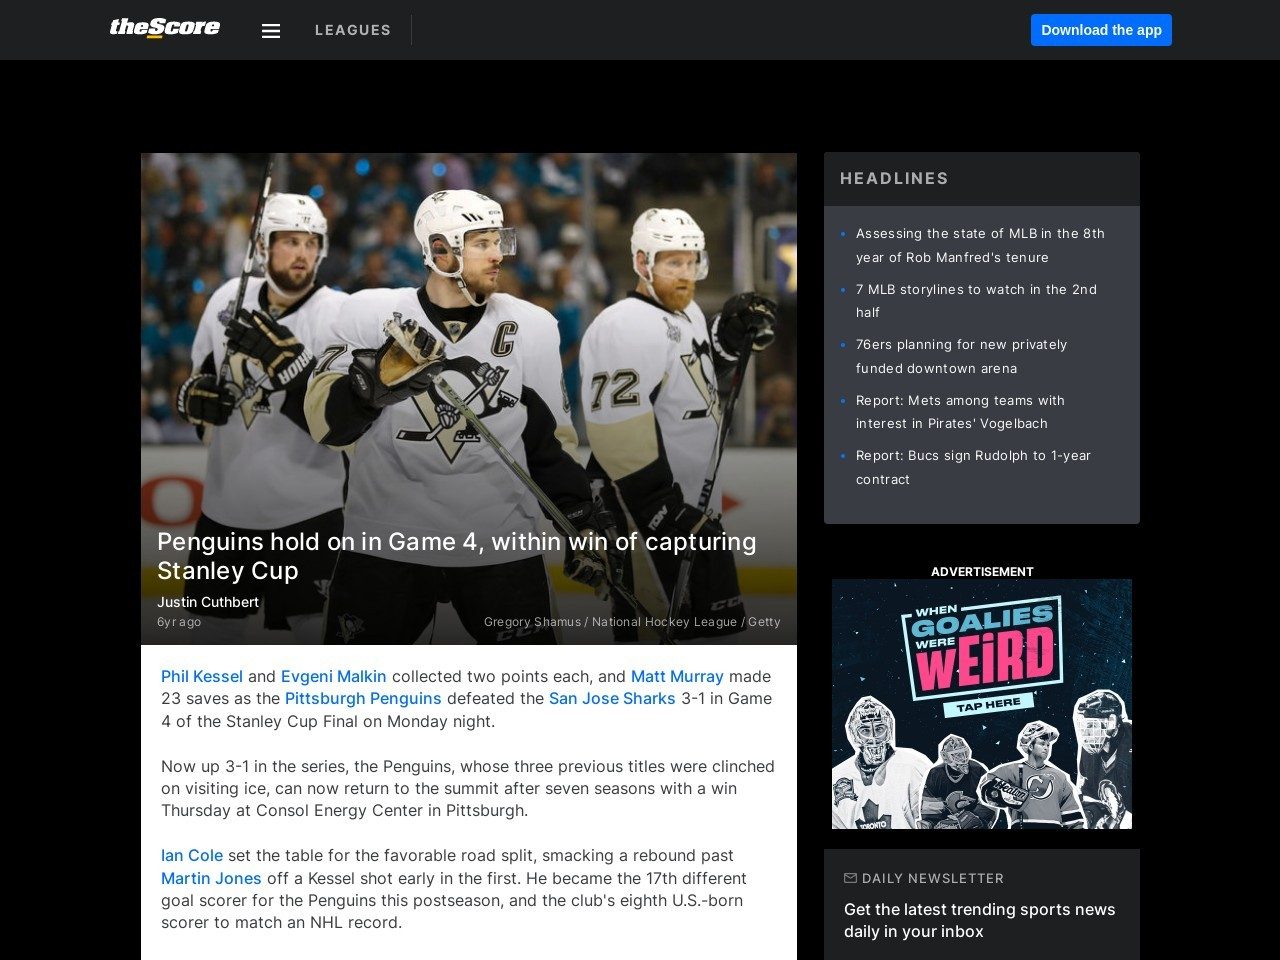 Penguins hold on in Game 4, within win of capturing Stanley Cup